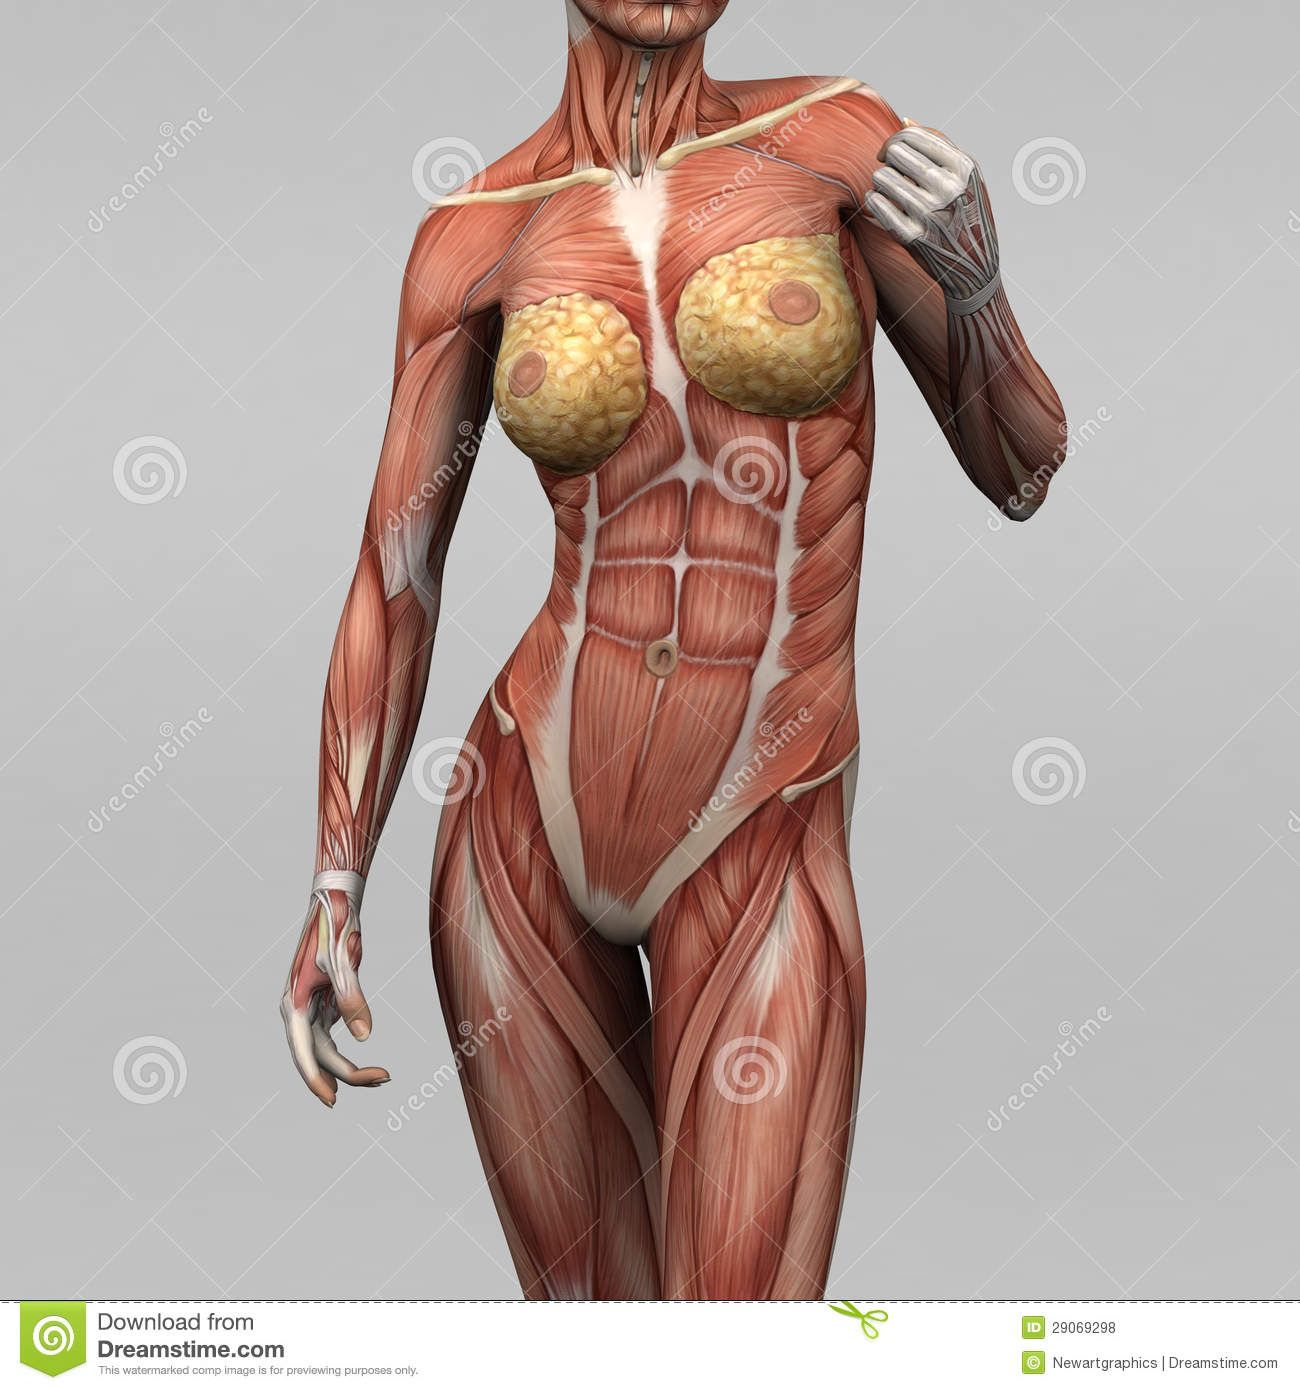 muscle anatomy | Royalty Free Stock Photos: Female human anatomy and ...